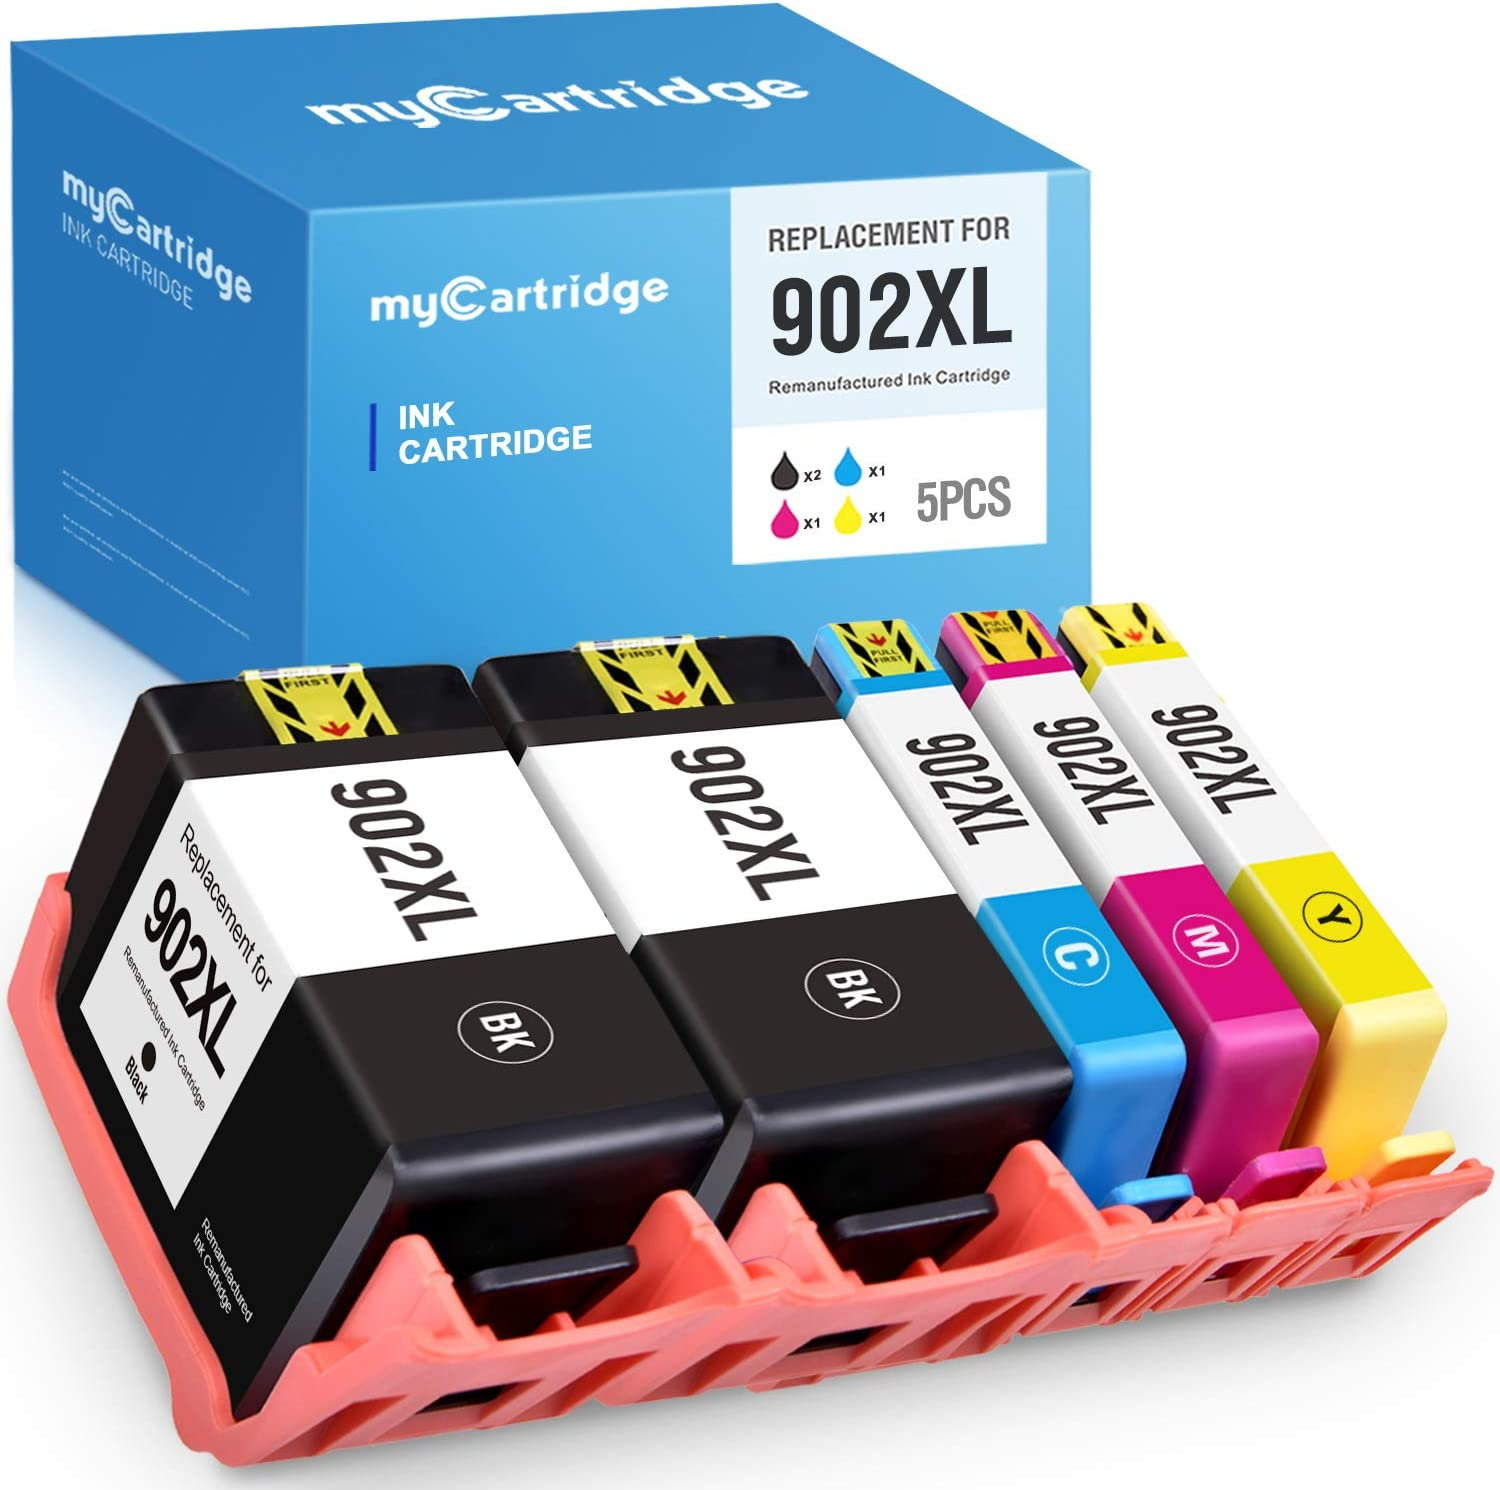 MYCARTRIDGE Remanufactured Ink Cartridge Replacement for HP 902XL 902 V8 for OfficeJet Pro 6960 6962 6970 6979 6950 6954 6975 6968 6978 6958 6971 6974 1 Set + 1 Black